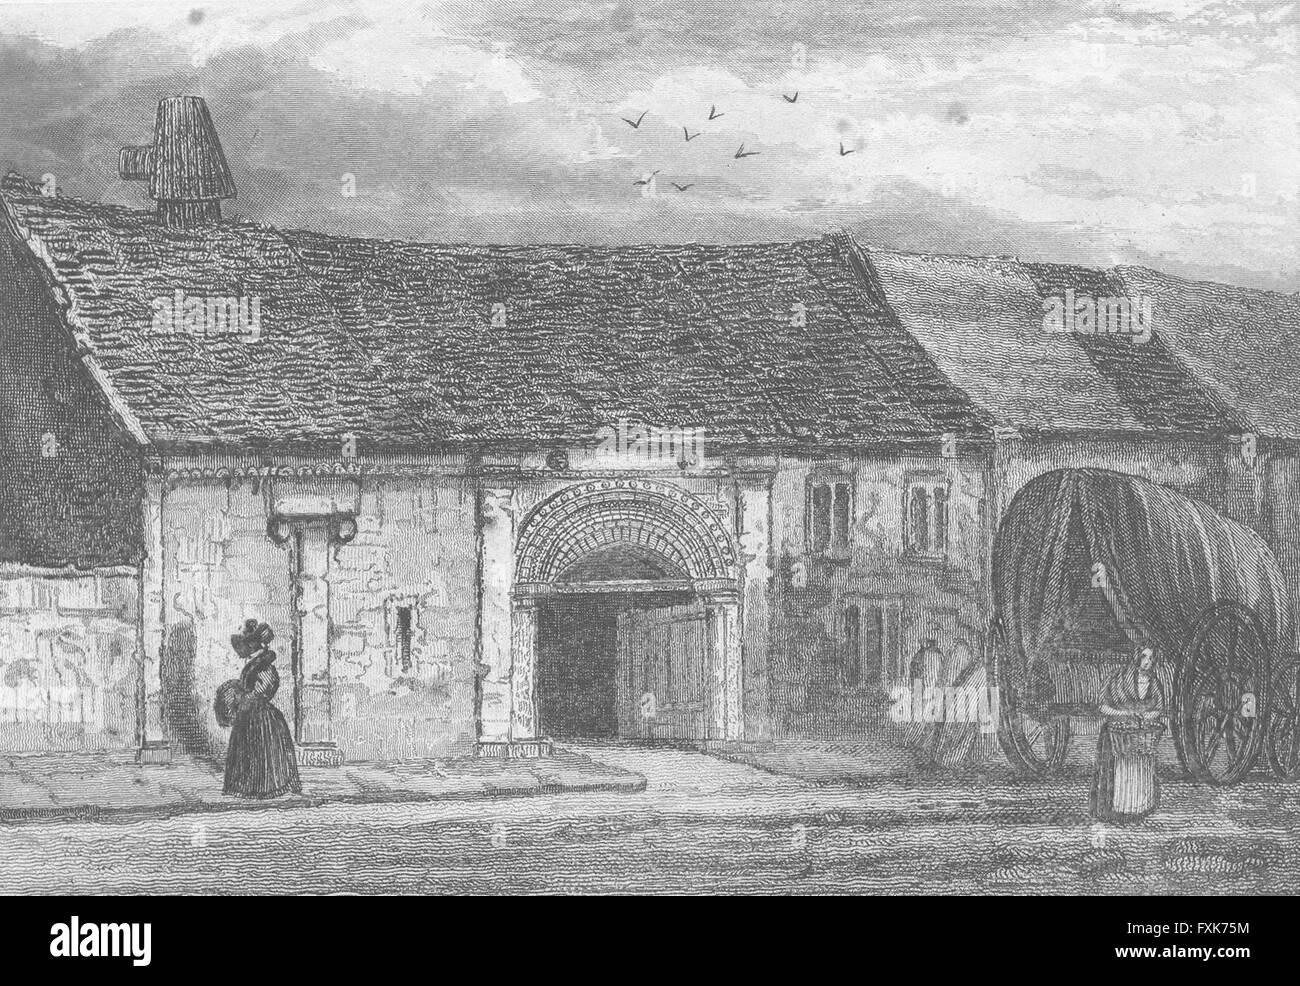 LINCOLN: John of Gaunt's Stables: STABLE: Saunders, antique print 1836 - Stock Image